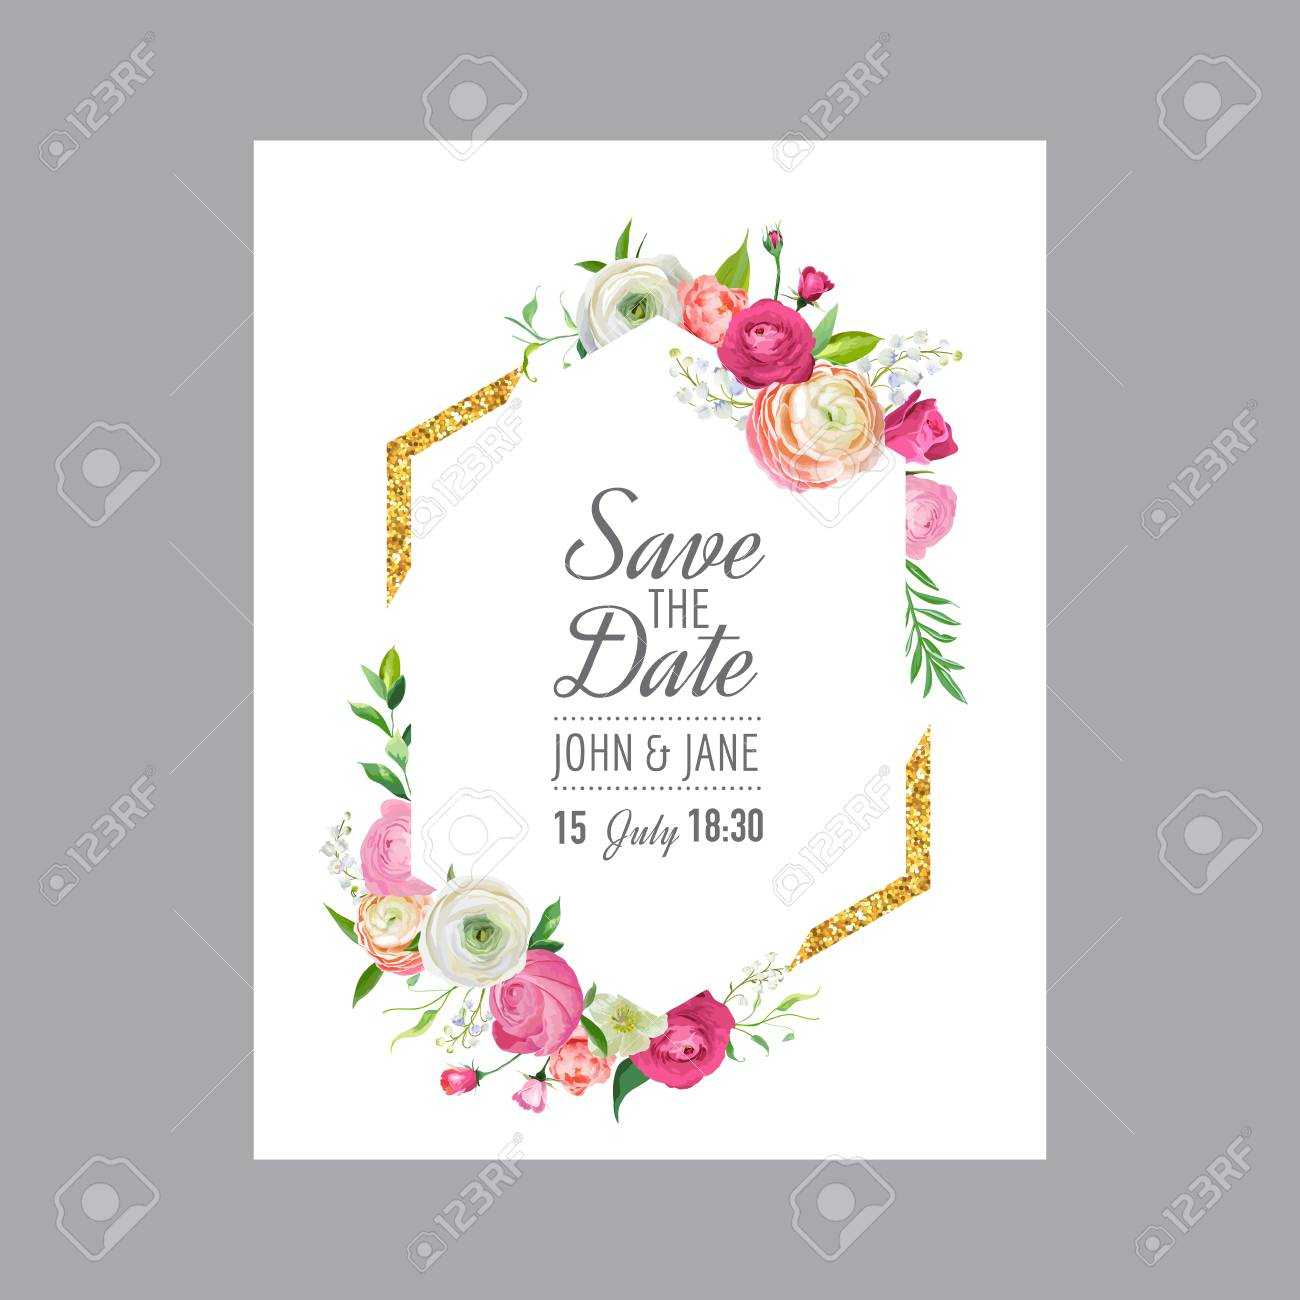 Wedding Invitation Card Template Save Date Stock Vector With Save The Date Cards Templates